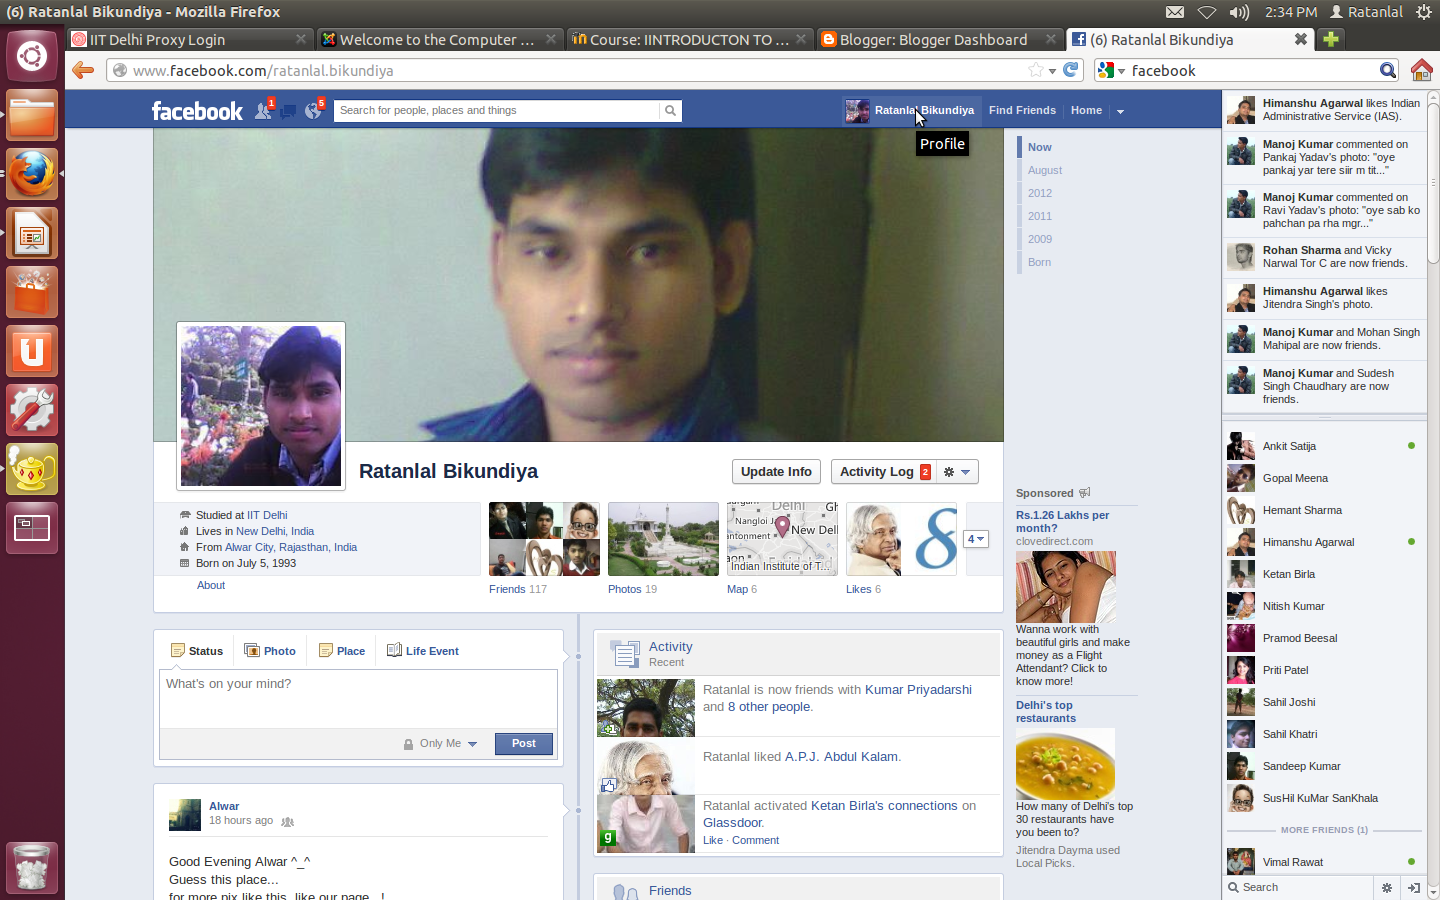 At iit delhi i blongs to rajasthan i have facebook account facebook